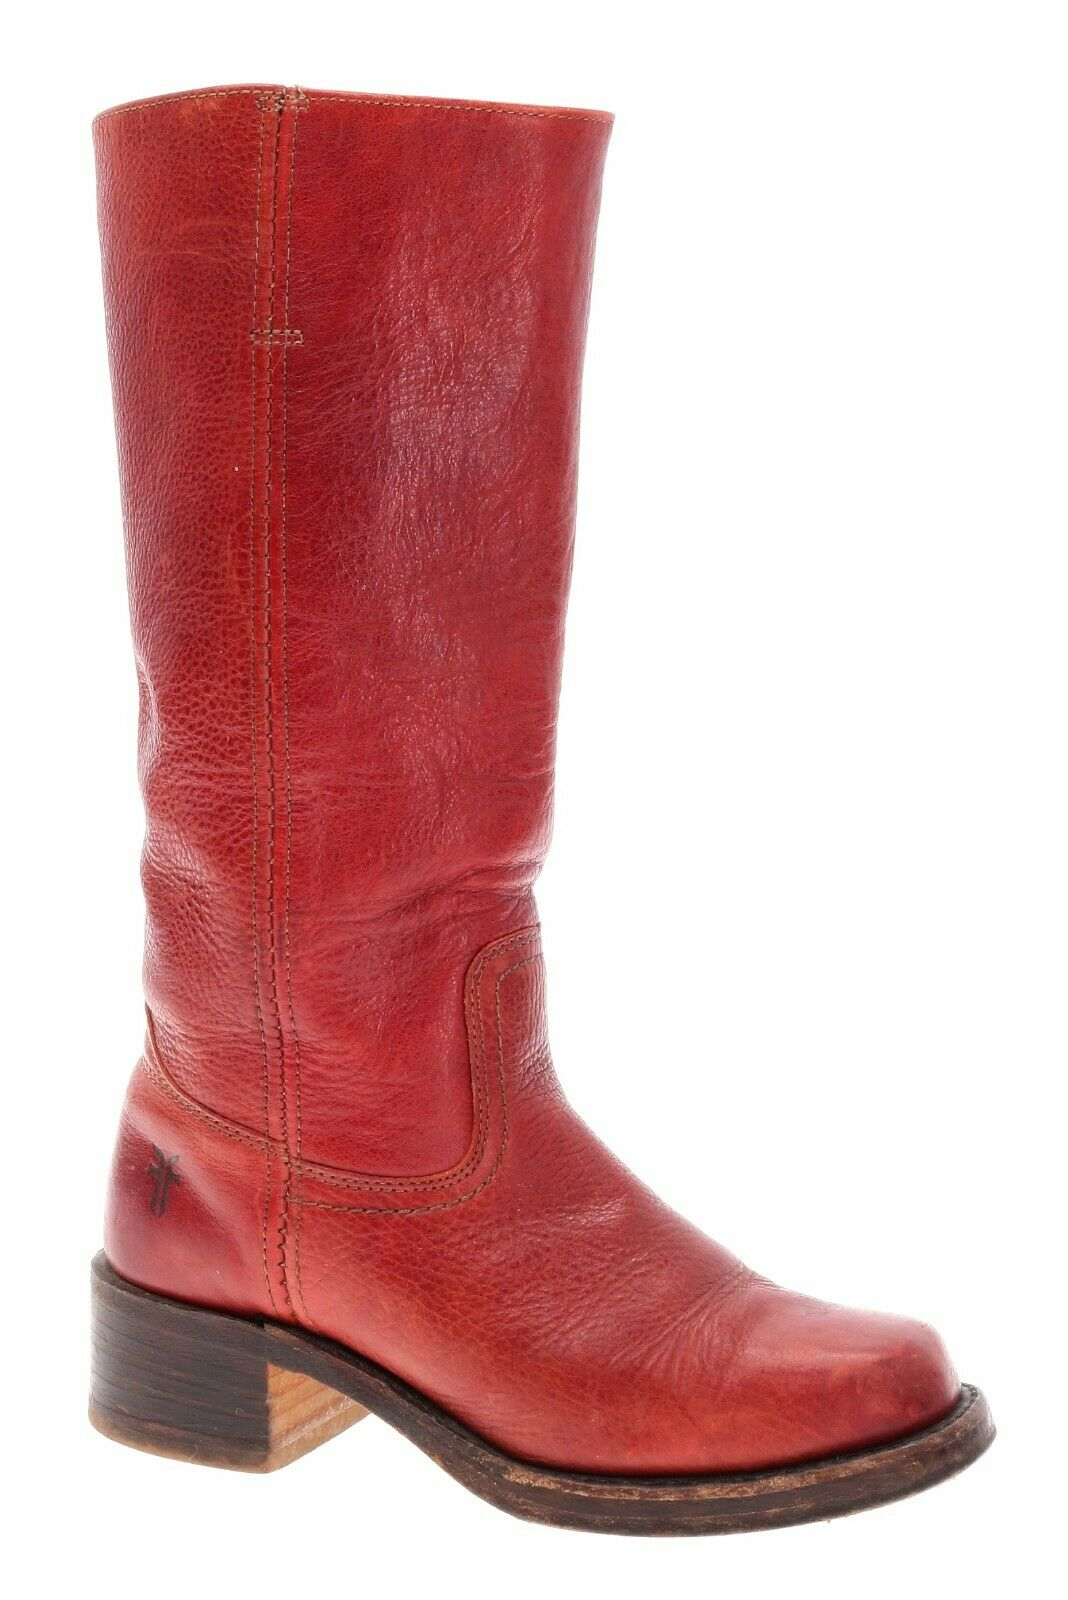 VINTAGE USA Mens rosso FRYE CAMPUS stivali Leather Tall MOTORCYCLE stivali Dimensione 6.5 M